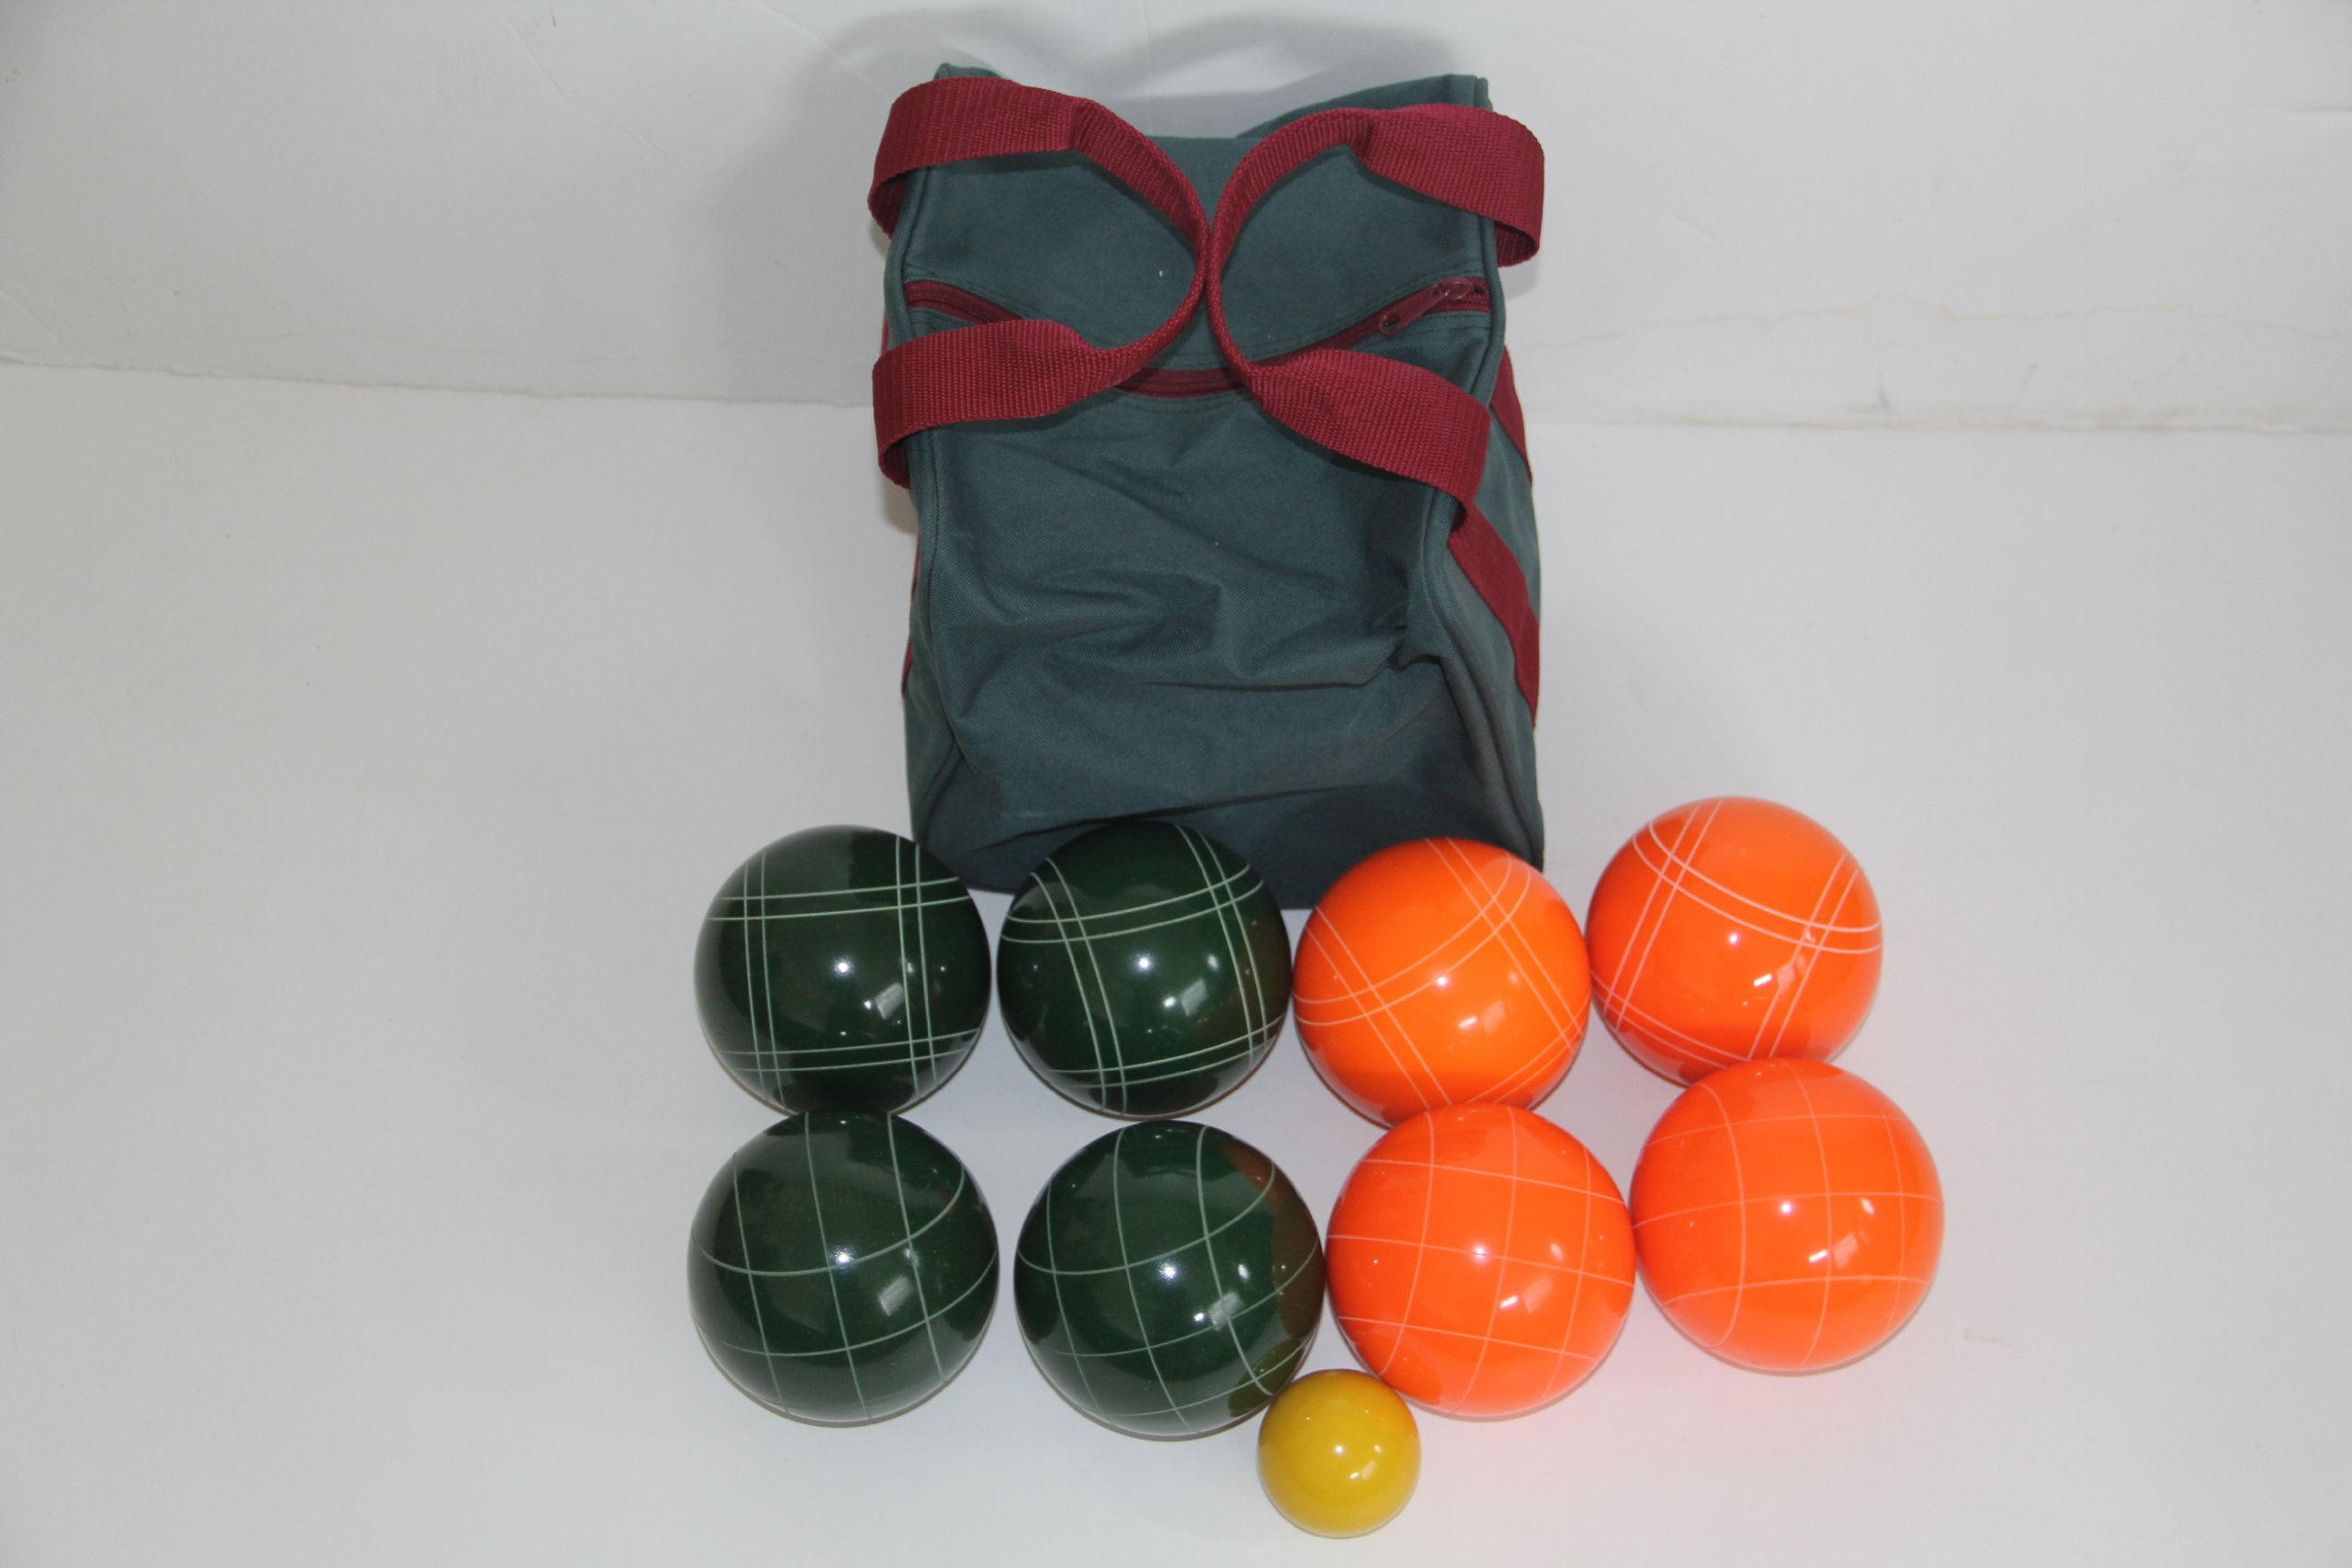 Premium Quality EPCO Tournament Set - 110mm Orange and Green Bocce Balls [Toy]